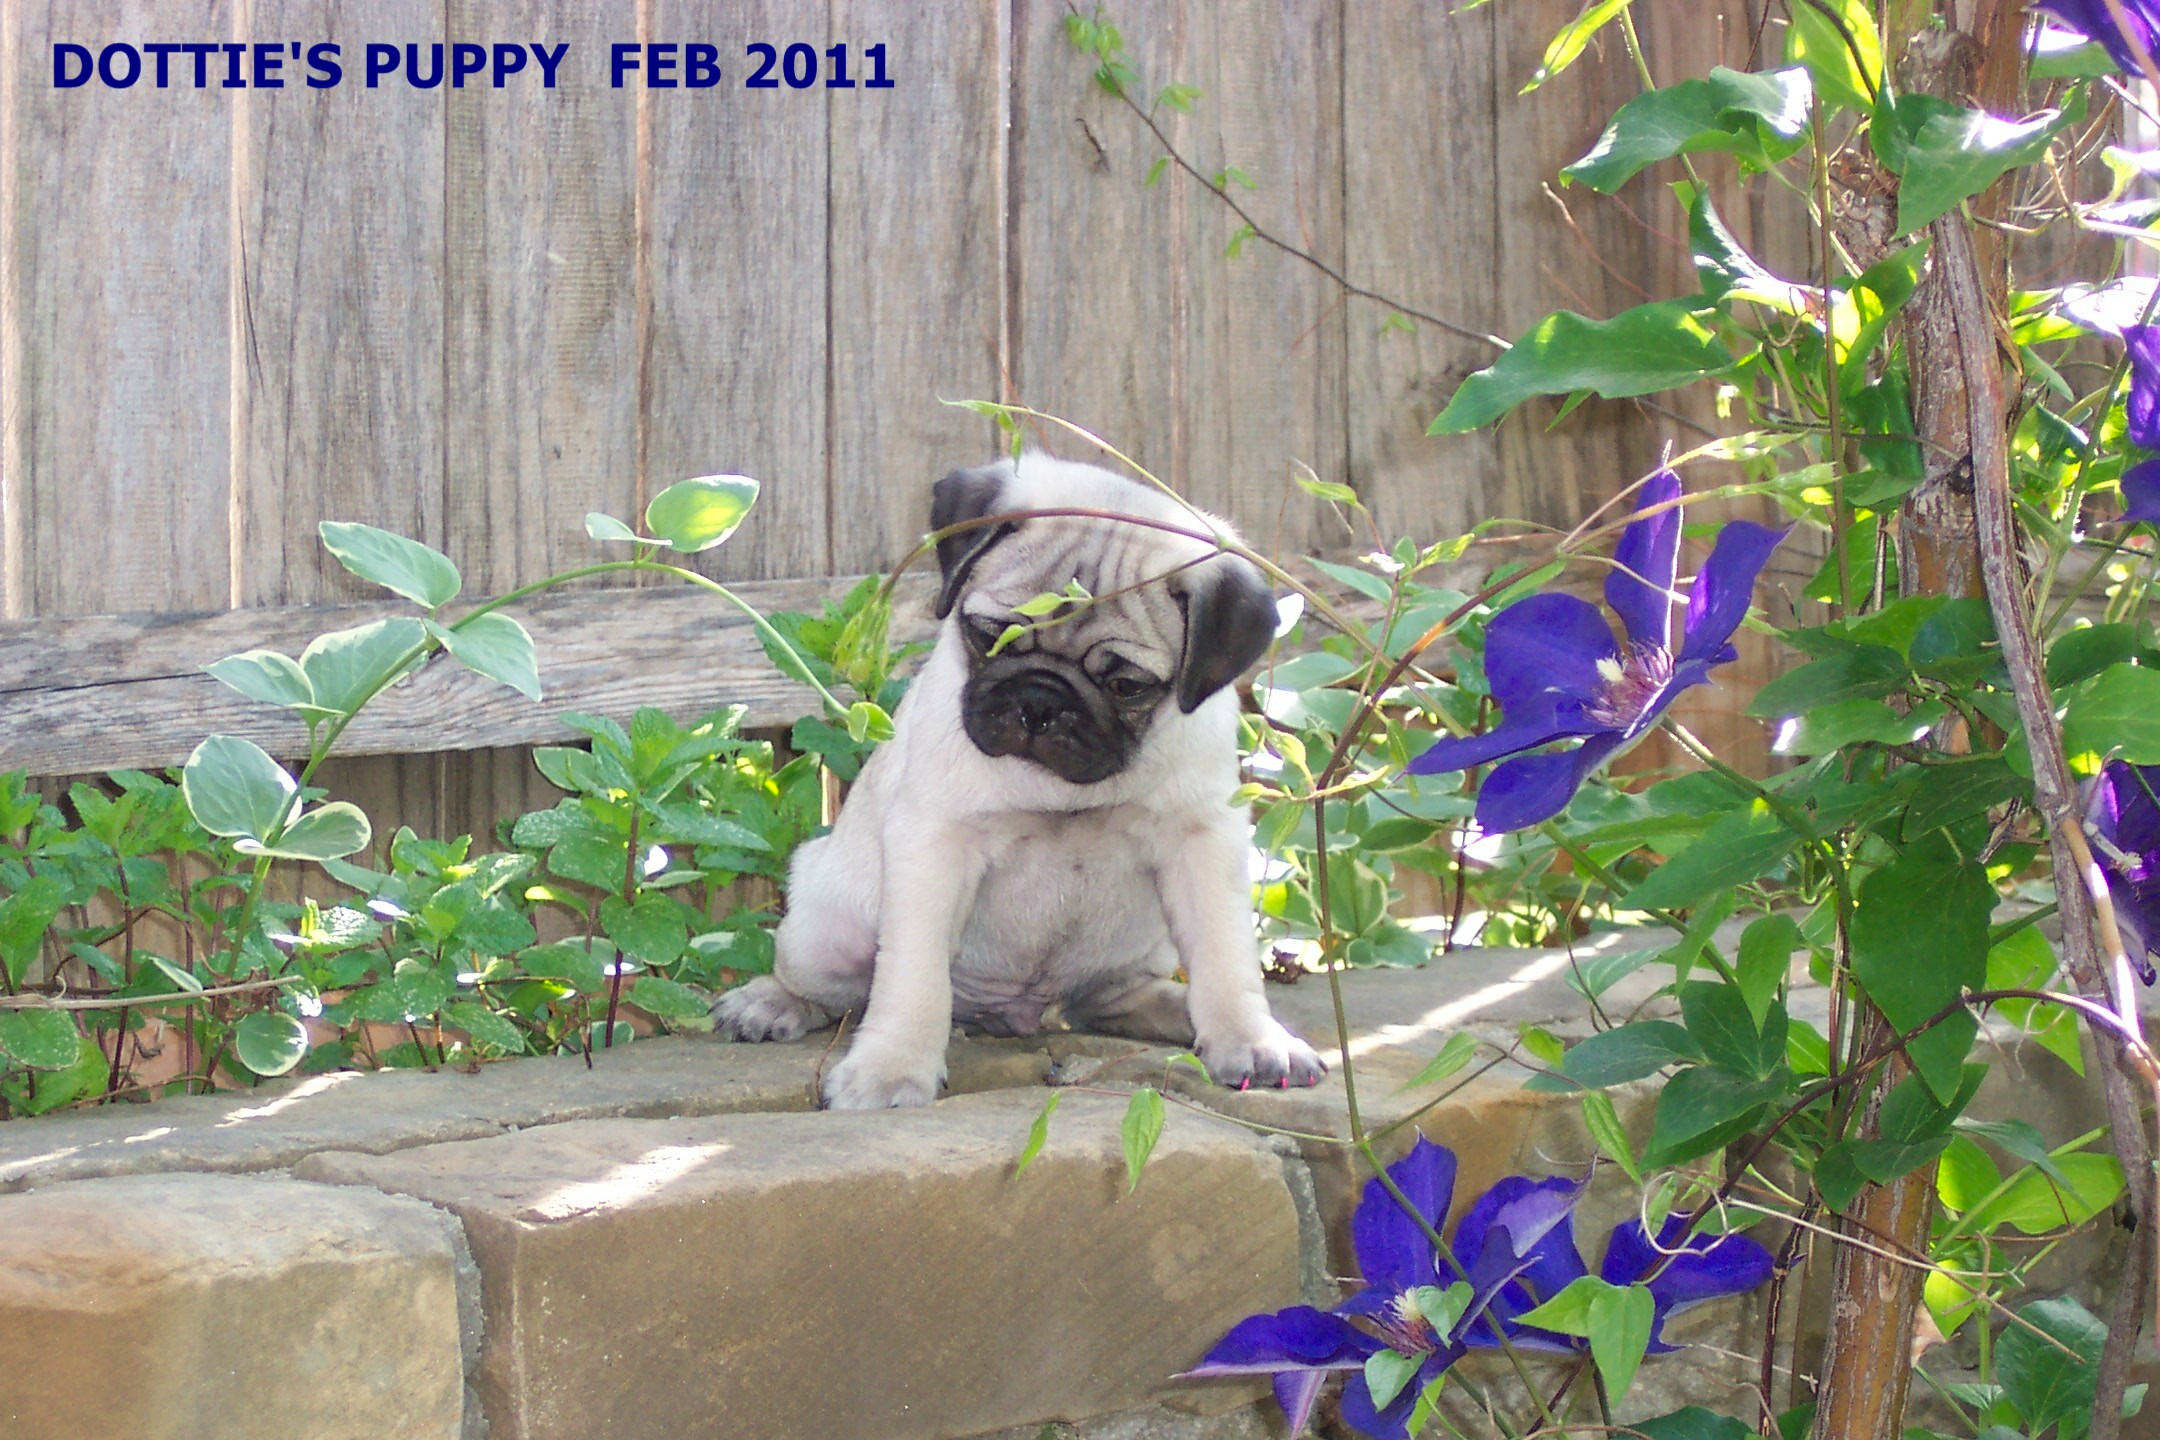 DOTTIES MALE PUP OUTside 2011 clematis